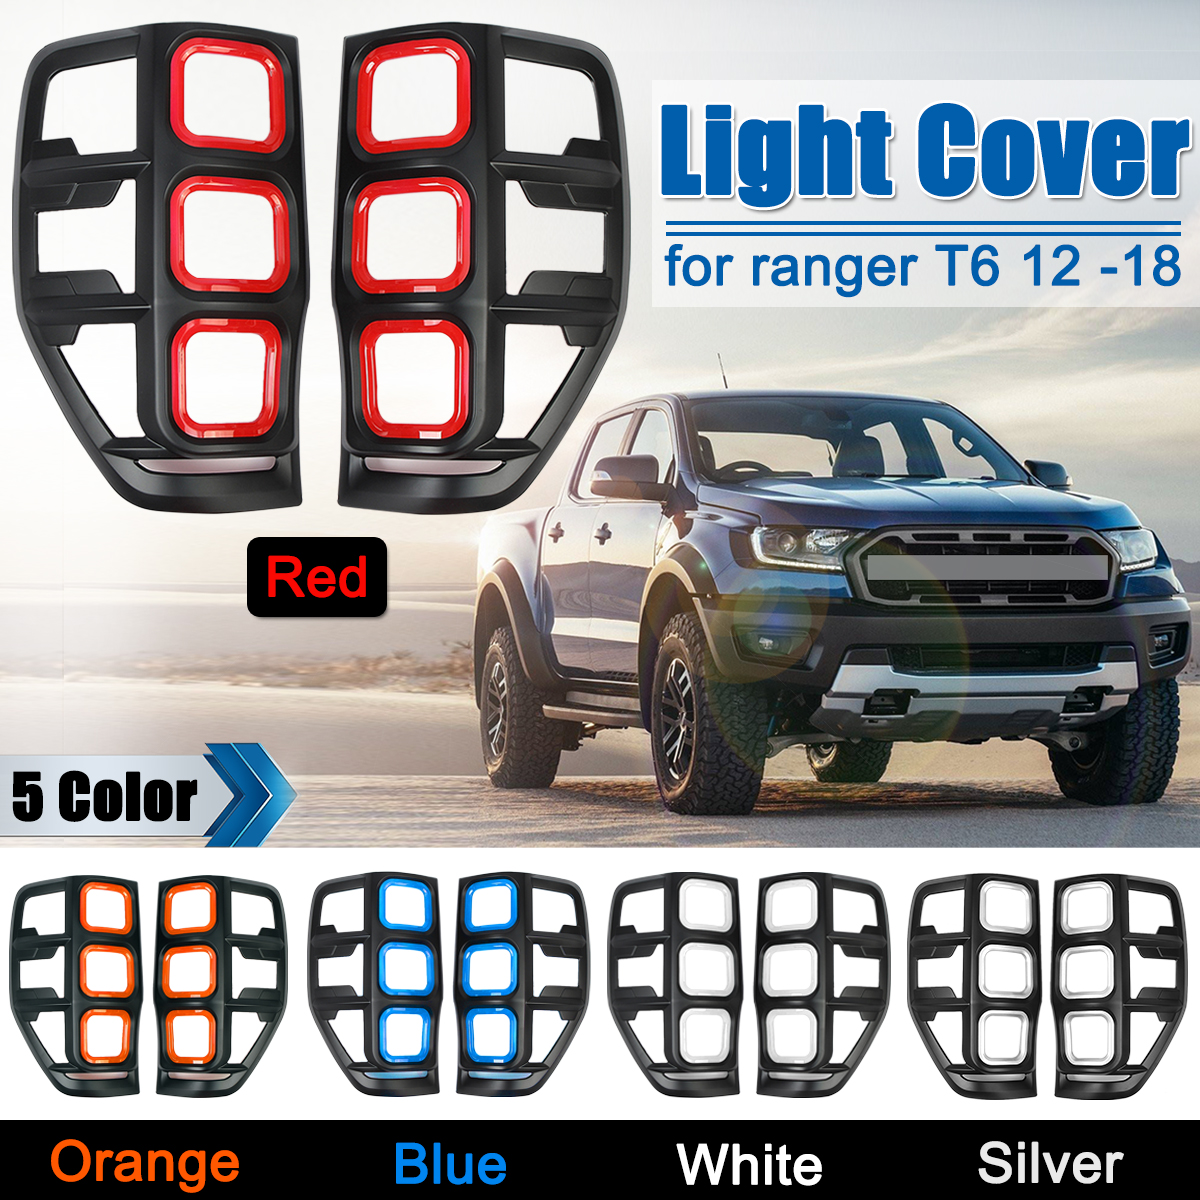 1Pair ABS Rear Light Covers Lampshade Without Light For Ford Ranger T6 2012-2018 Rear Tail Light Lamp Cover Accessories